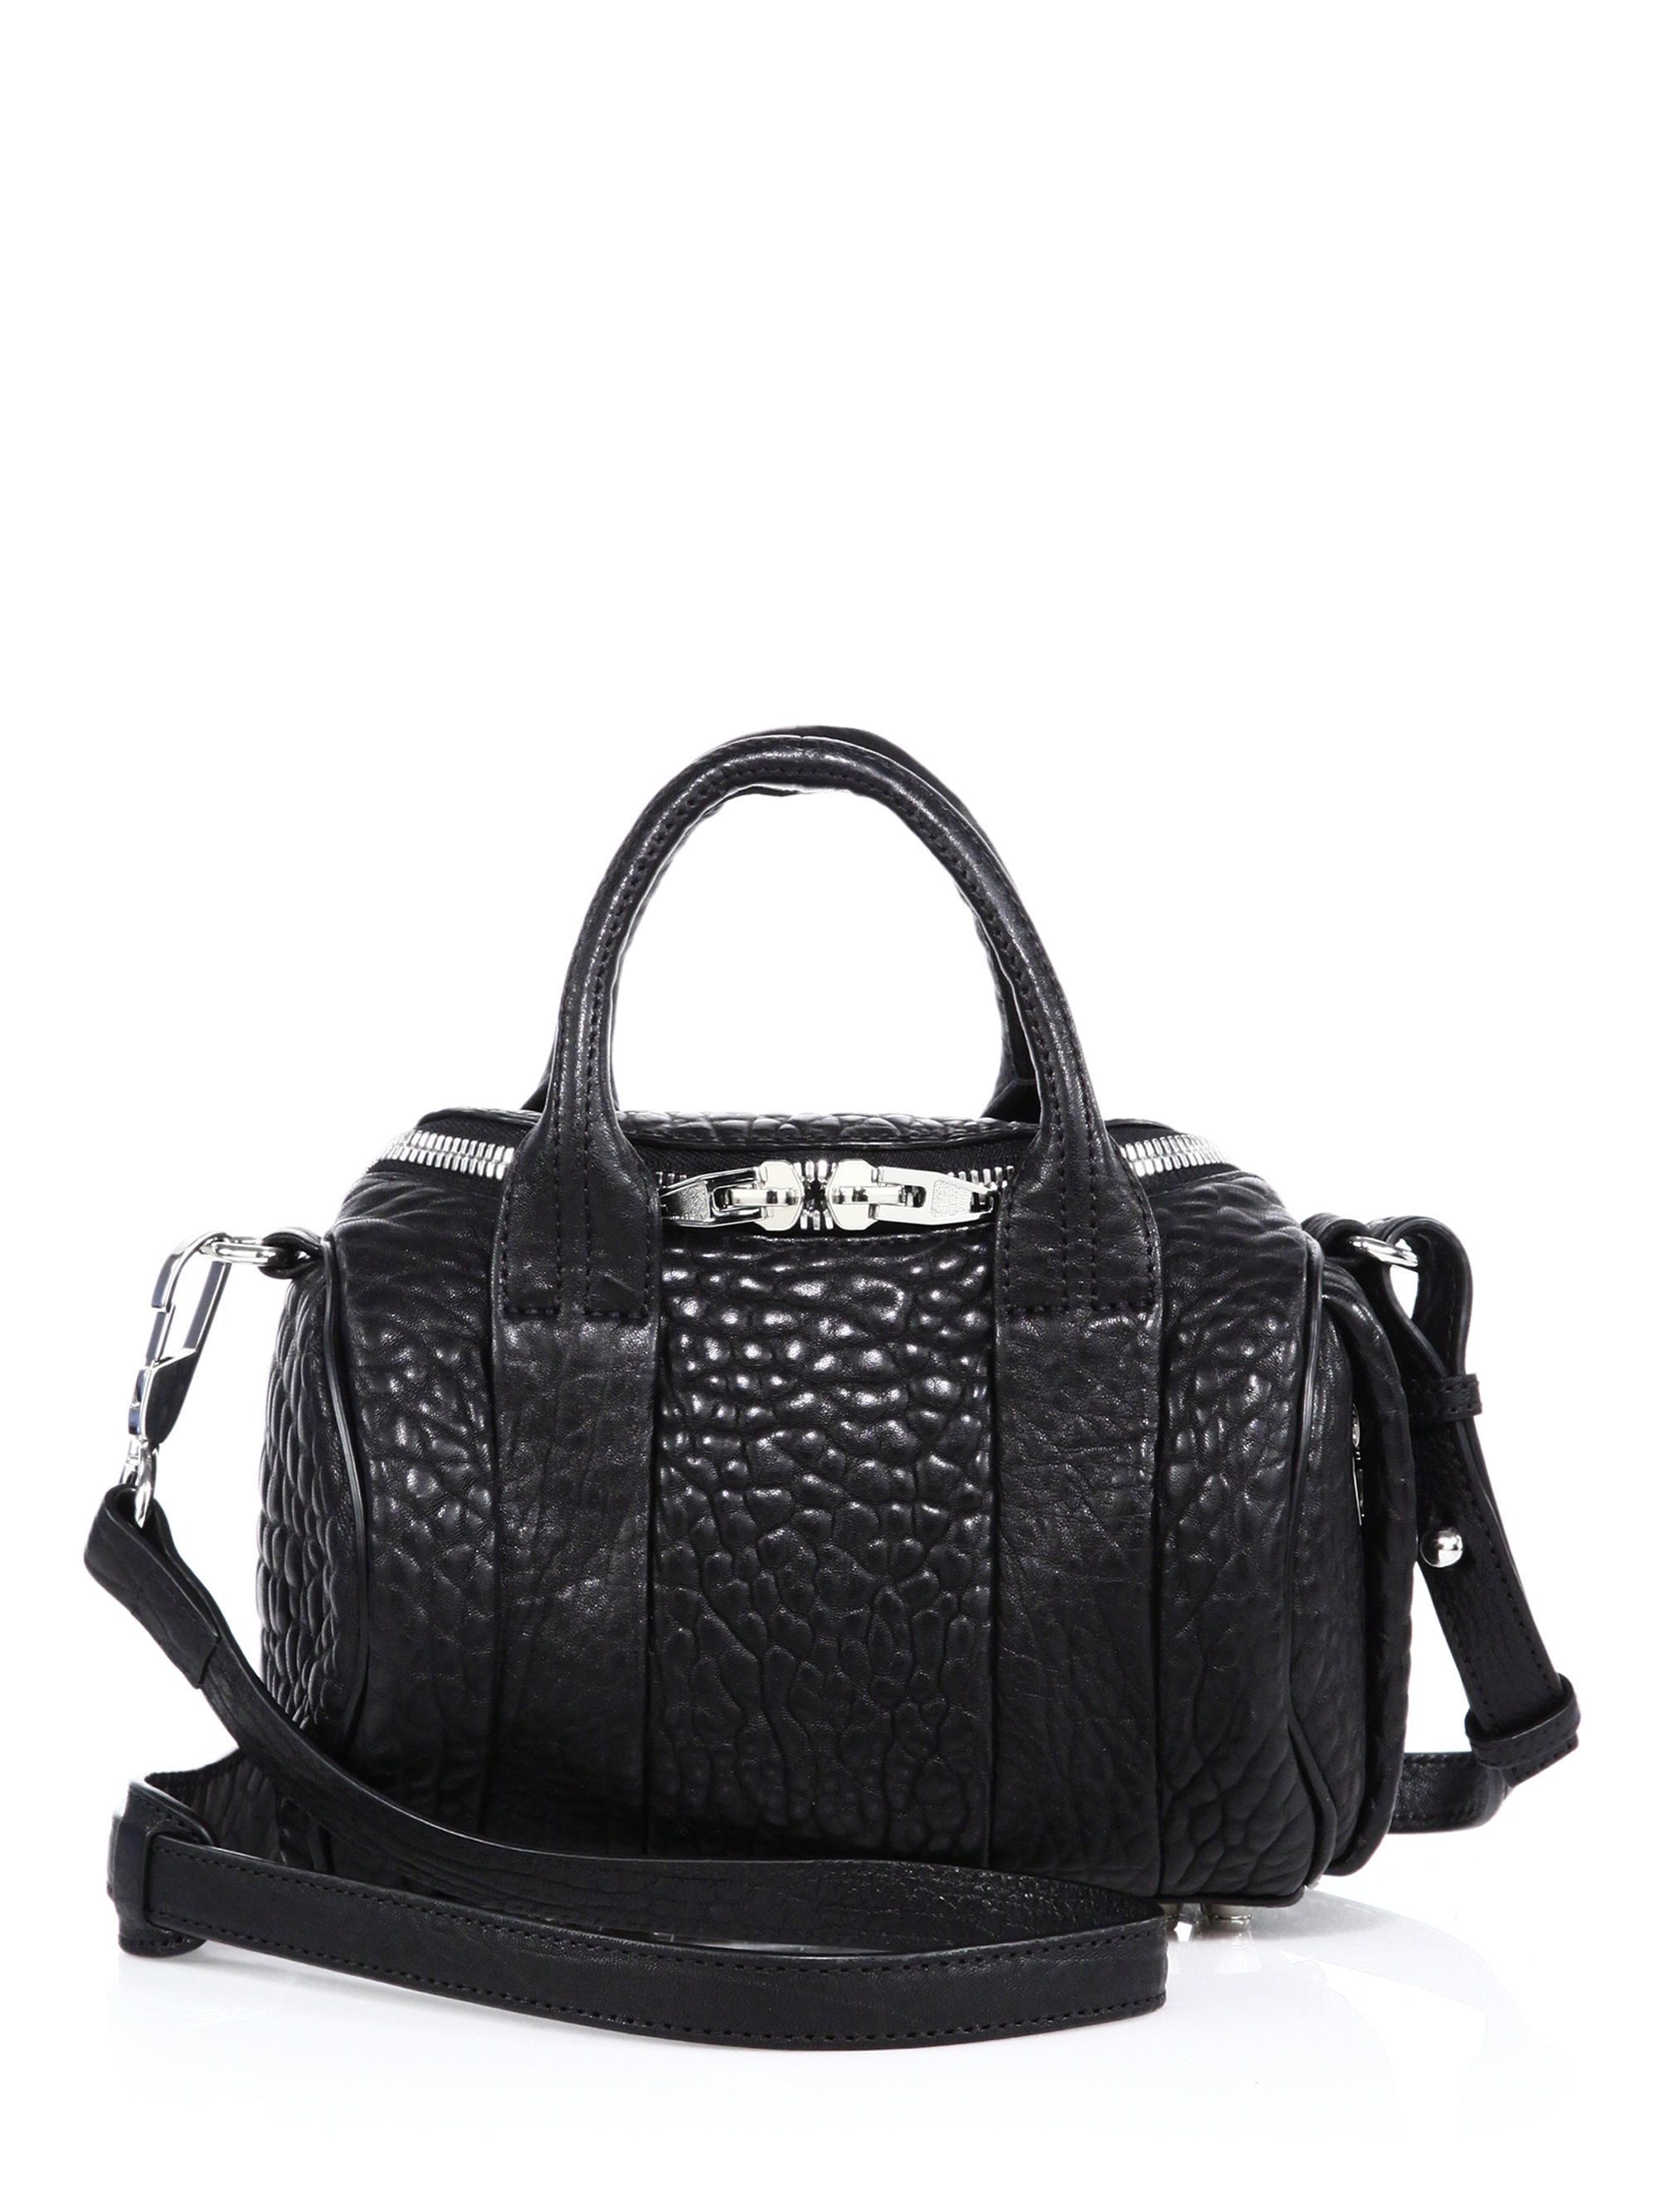 Aug 26, · Alexander Wang Diego Bucket. PurseForum. Forums Contemporary Designers Alexander Wang #1 Aug 16, Marimari. Member Thread Starter. Aug 29, 90 Posts. I definitely have to go somewhere so I can see his bags in person. #5 Aug 17, jessicaxxx. Straight Edge. Nov 29,